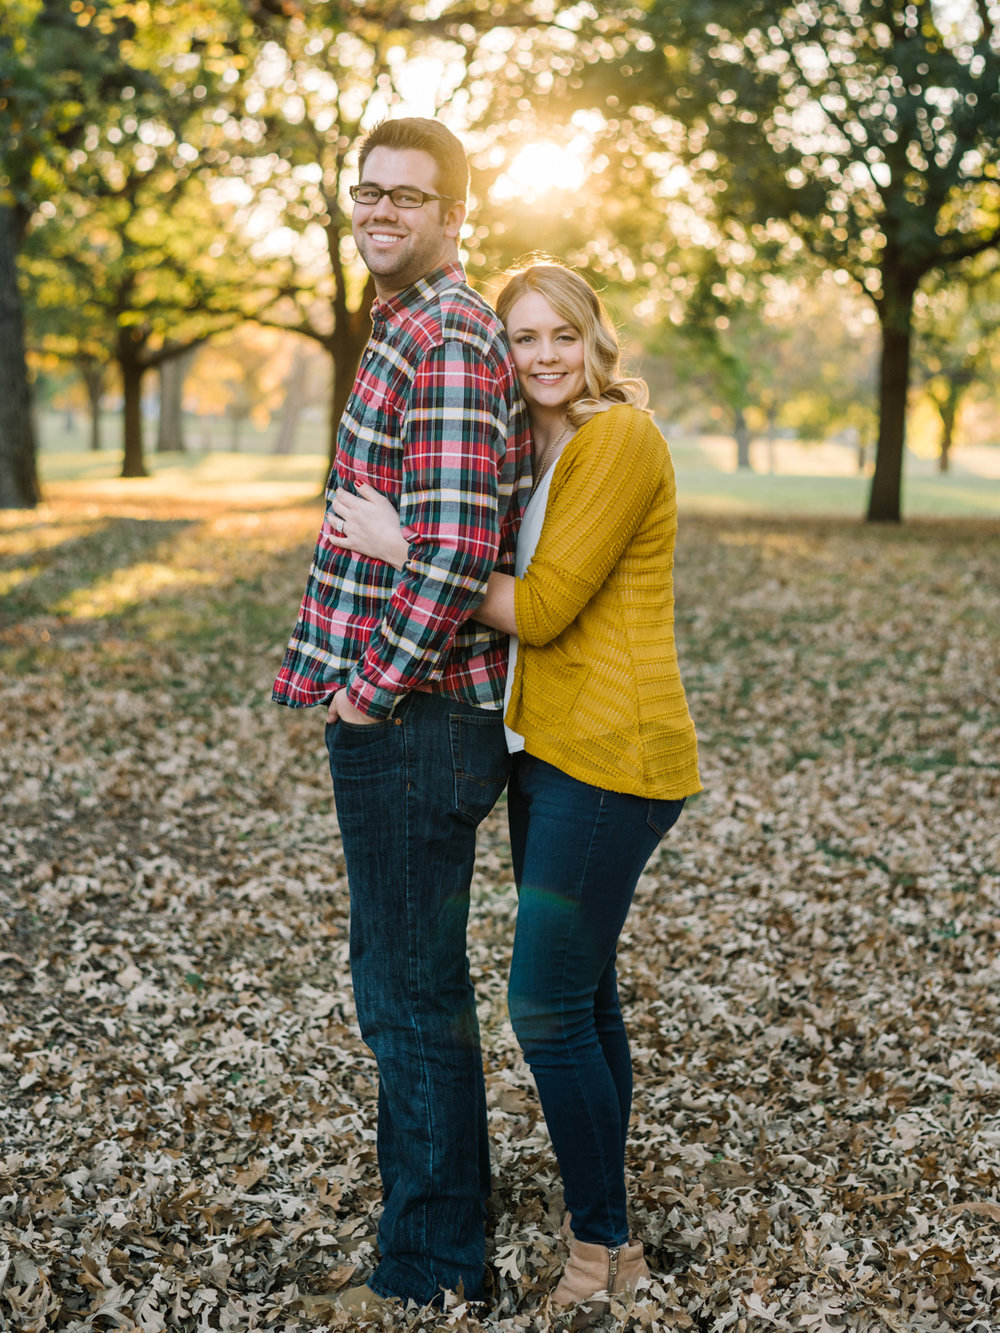 Wichita, Kansas Photography-Wichita, Kansas Engagement Photographer-Neal Dieker-Fall Engagement Session-130.jpg